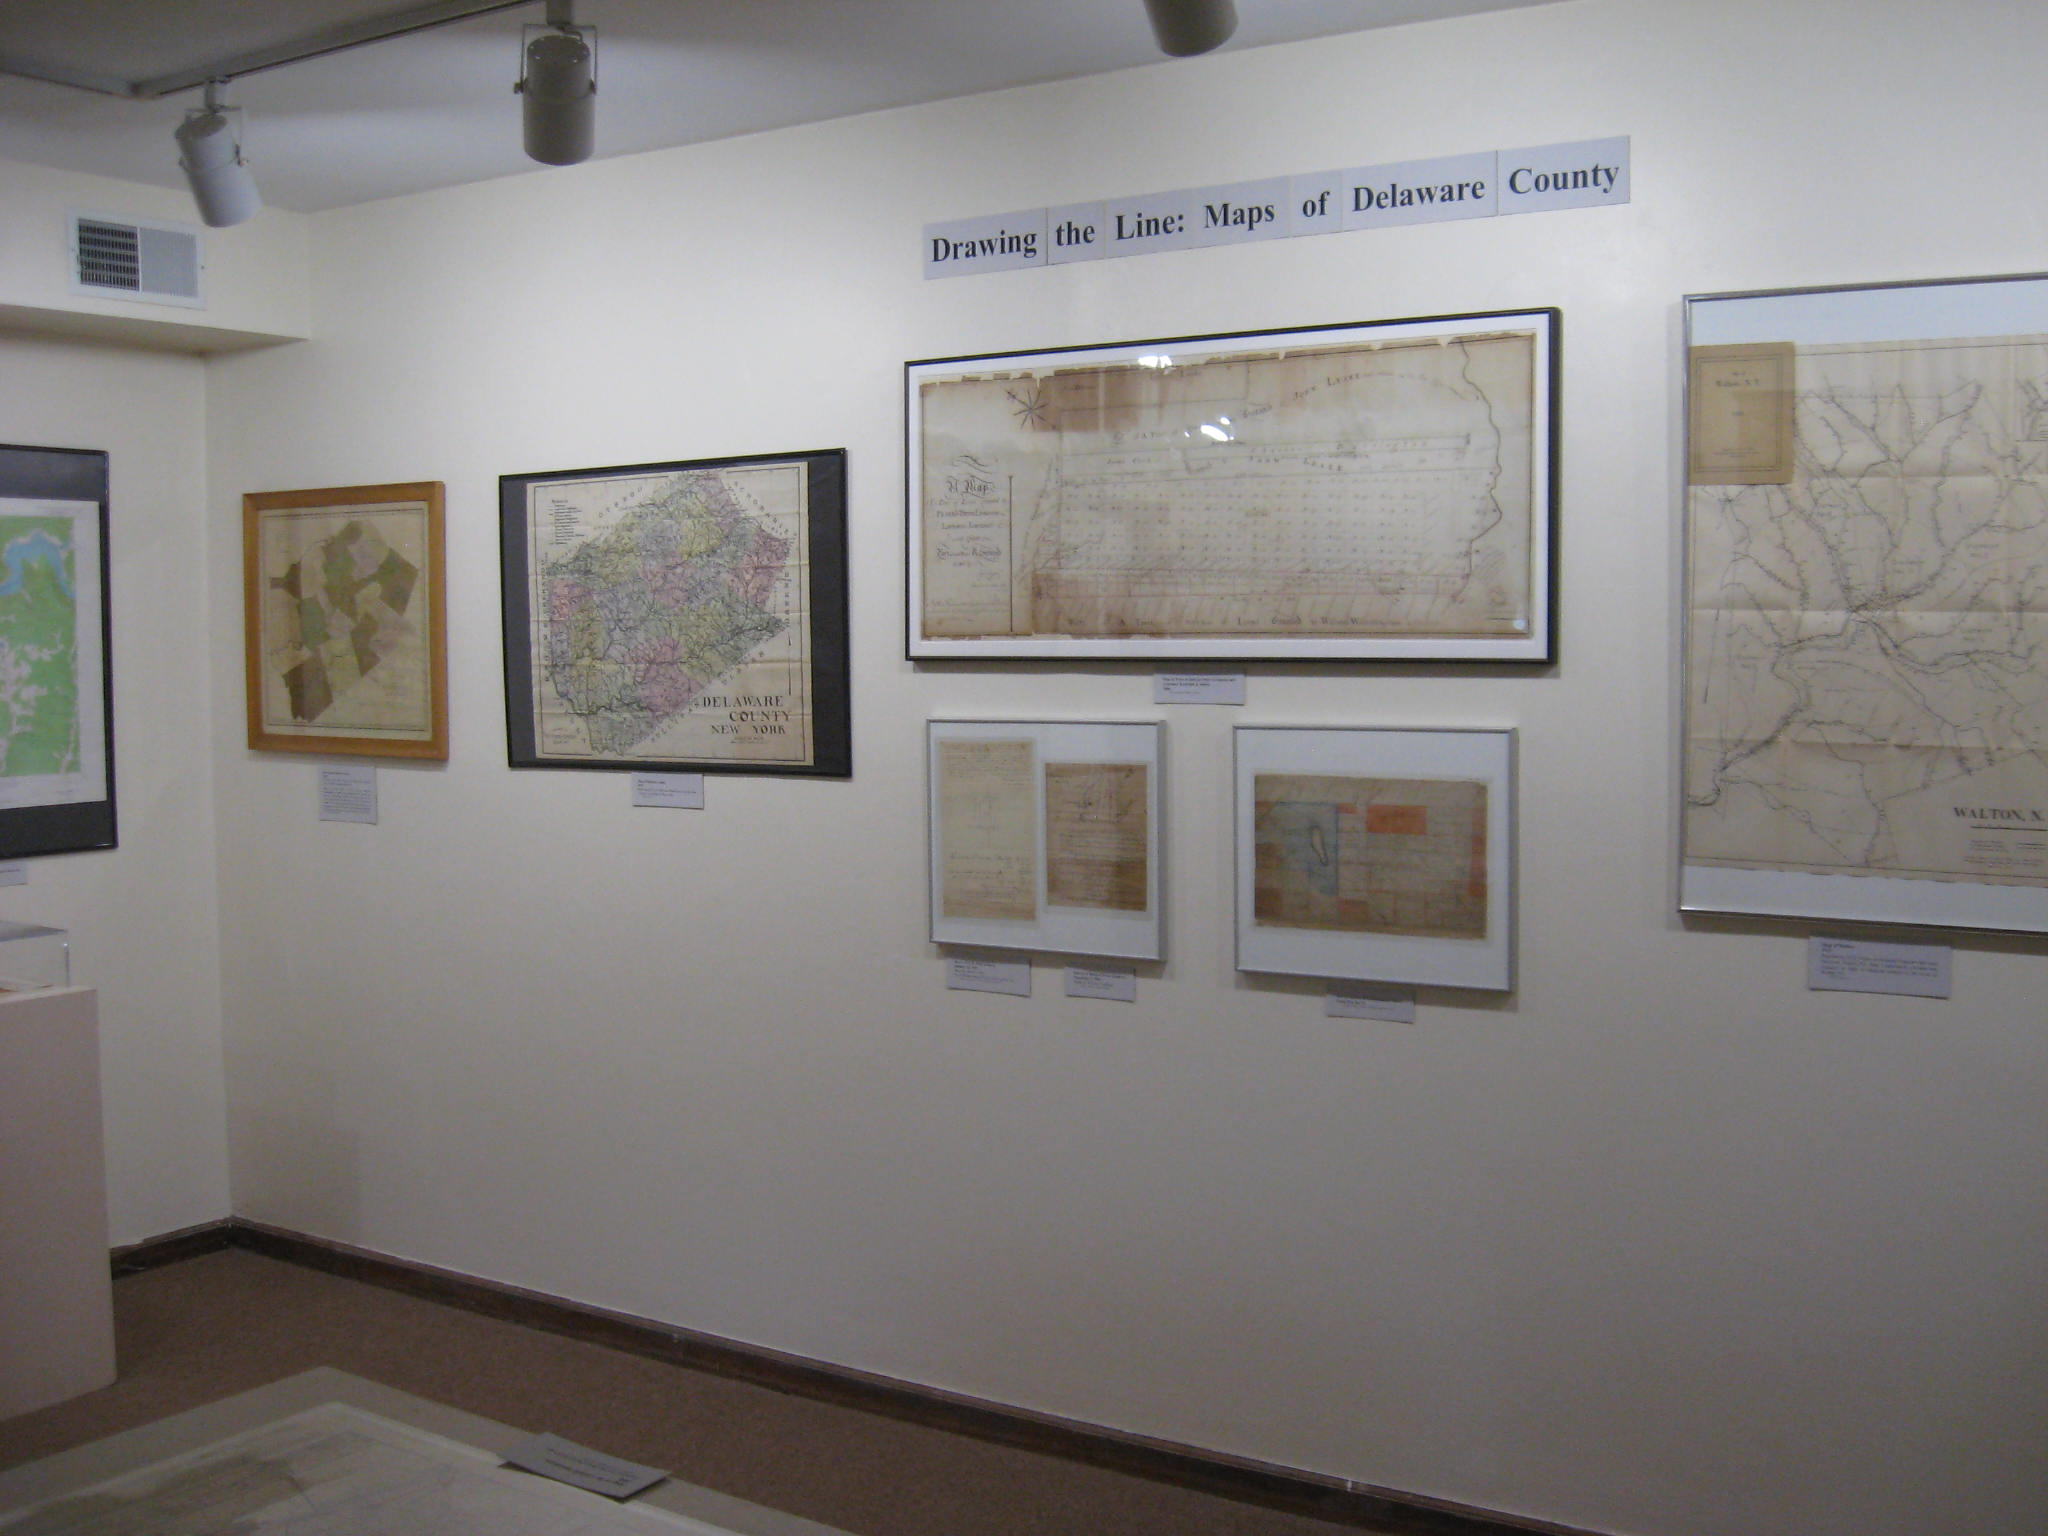 Delaware County Historical ociation - Past Exhibiton Page on